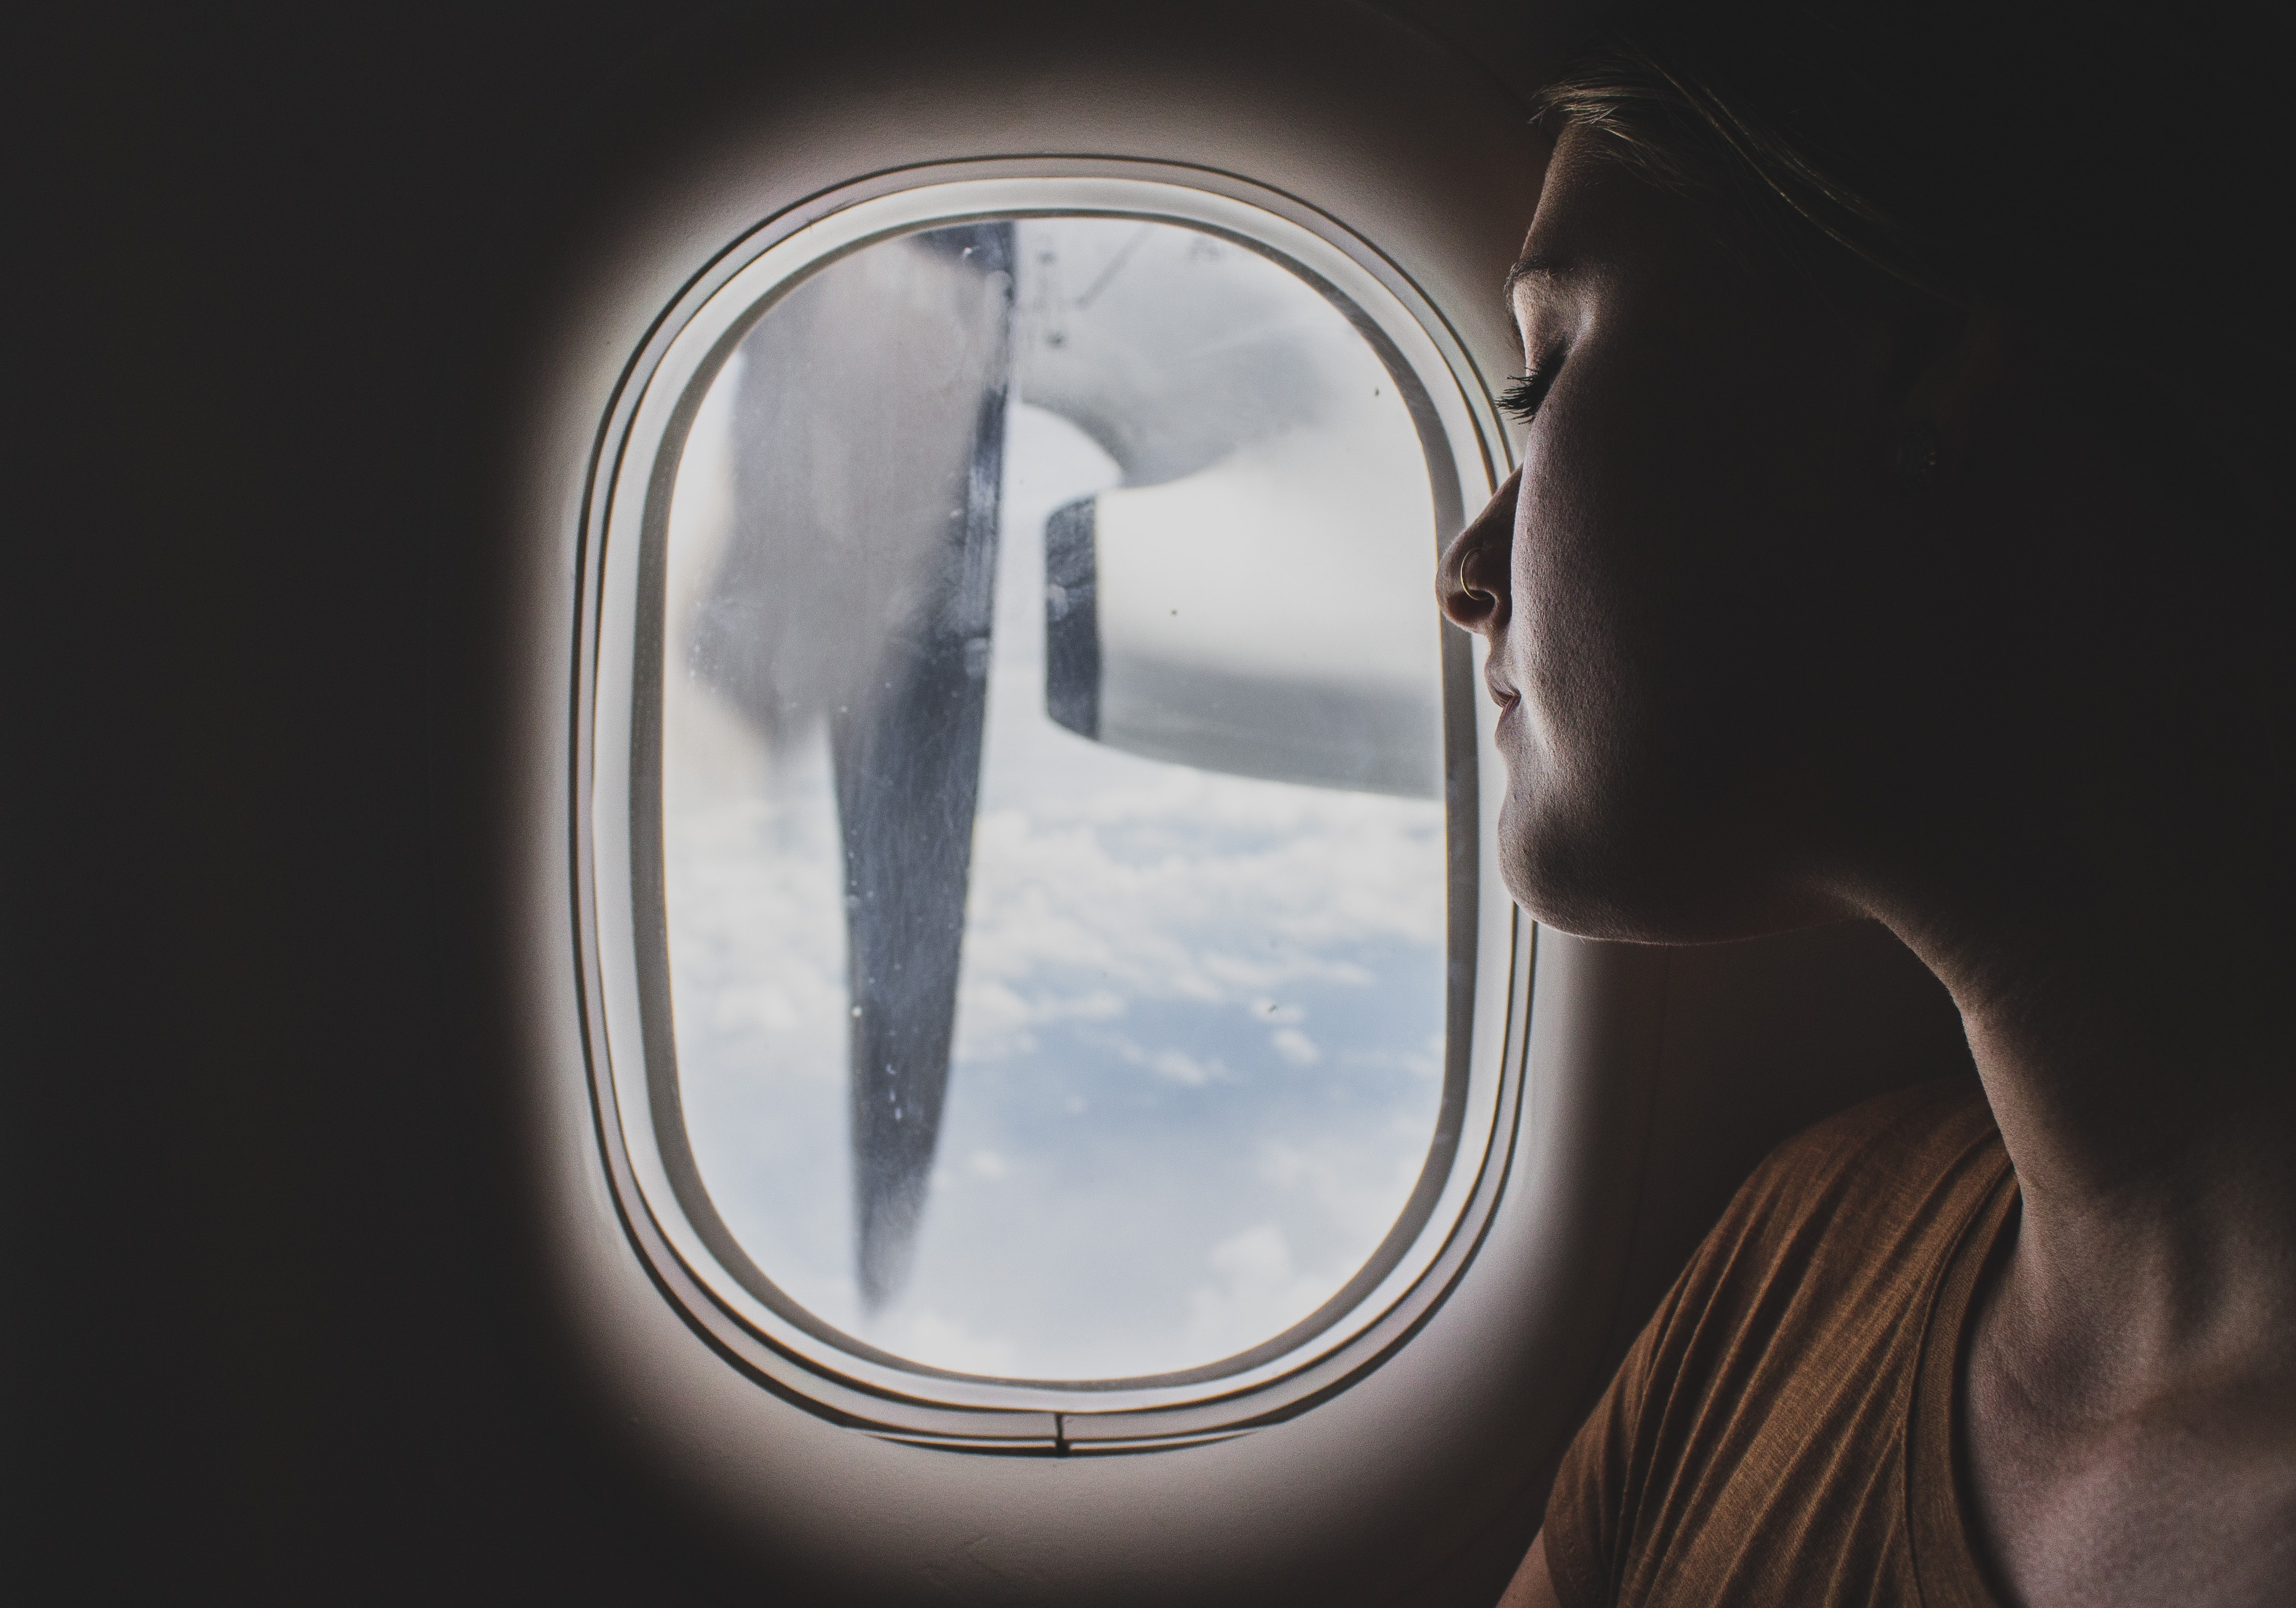 A close-up of a woman's face looking out the oval window on an airplane